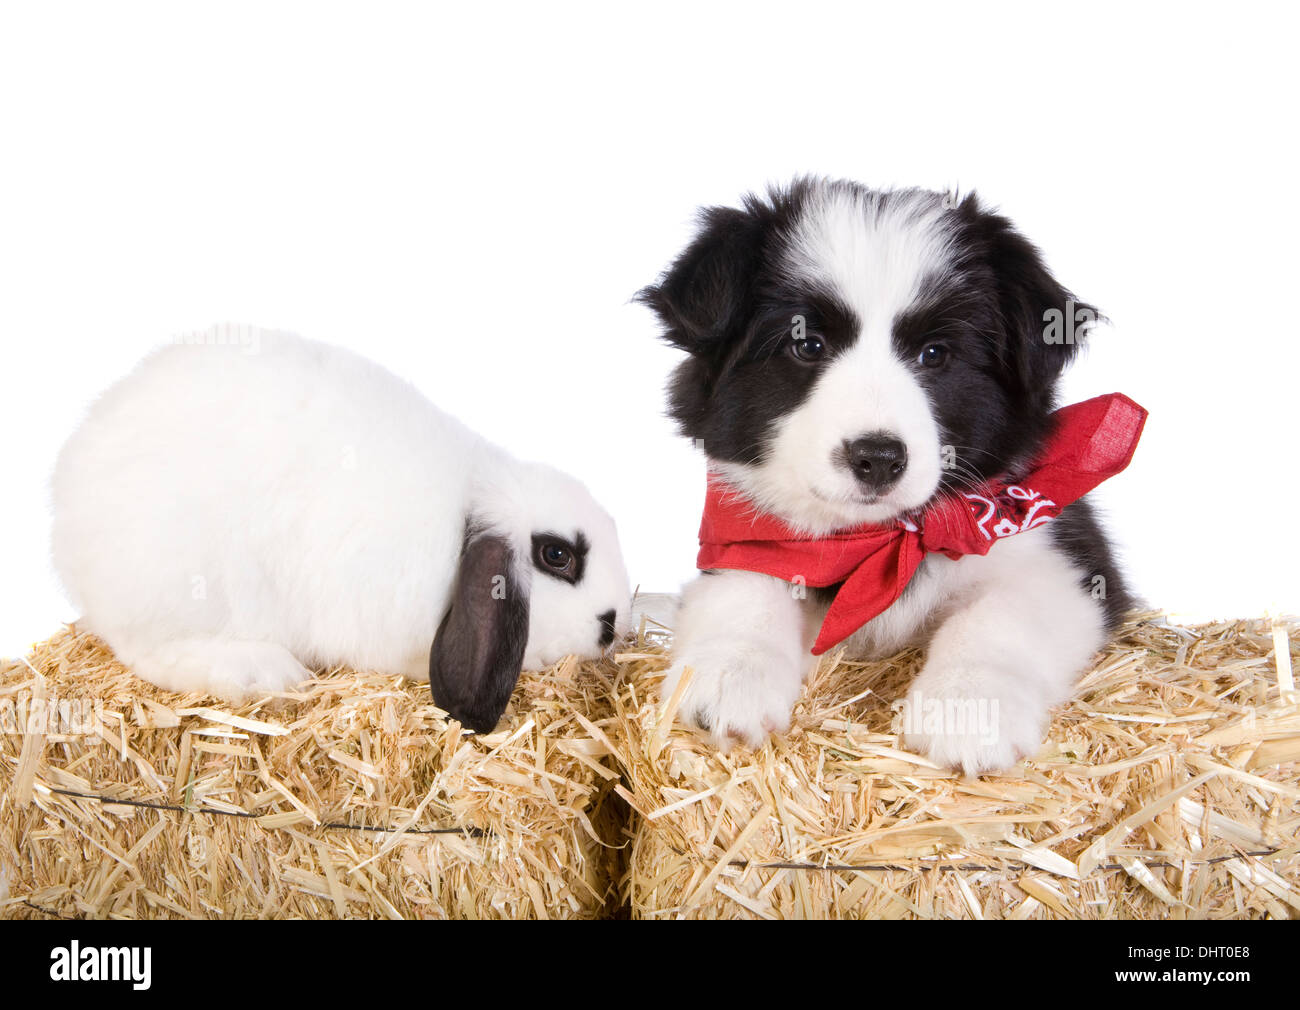 Cute Border collie puppy with black and white lop ear bunny rabbit on straw bales isolated on white background - Stock Image